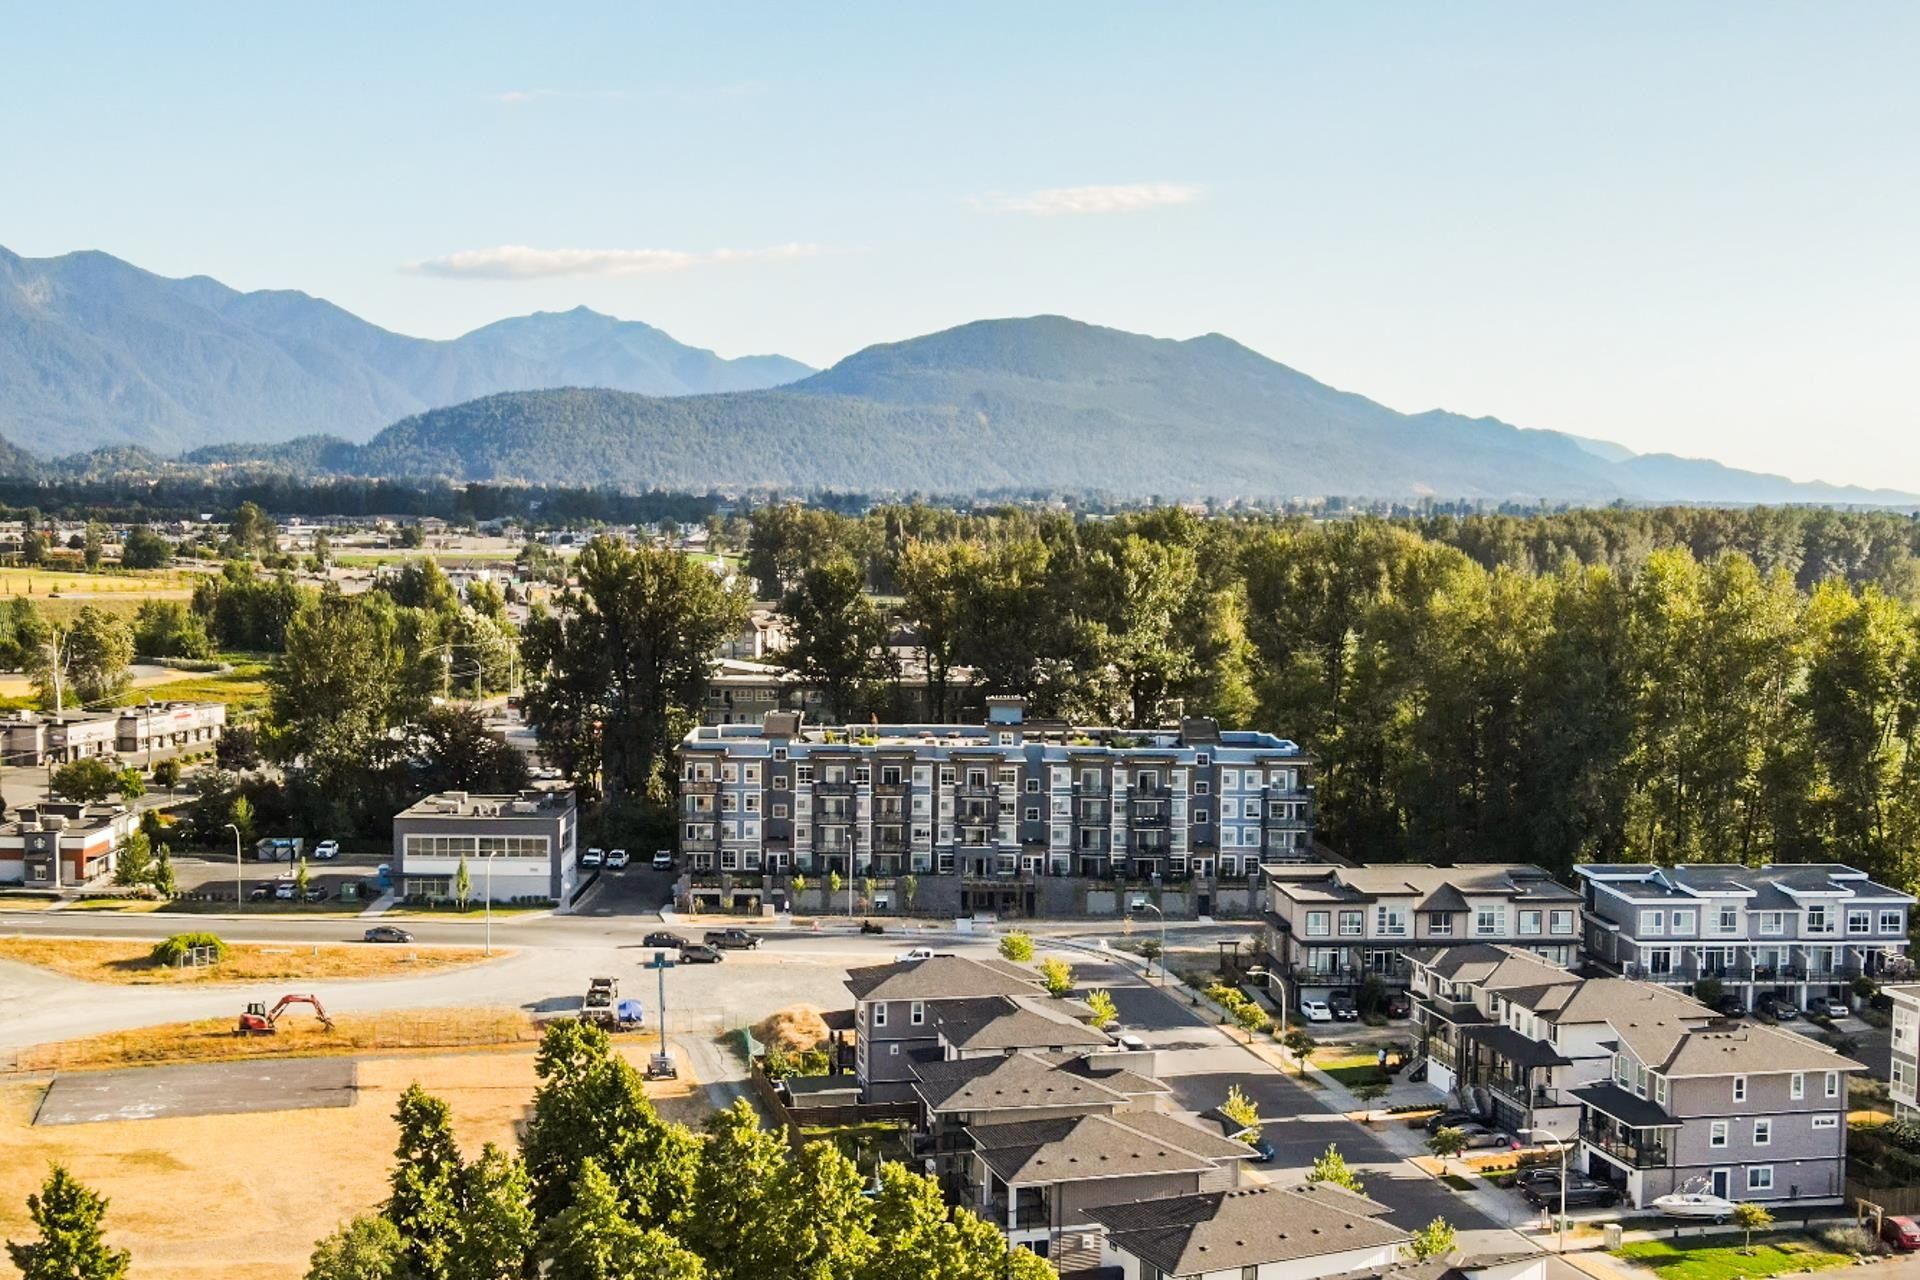 """Main Photo: 214 45562 AIRPORT Road in Chilliwack: Chilliwack E Young-Yale Condo for sale in """"Elliot"""" : MLS®# R2617961"""